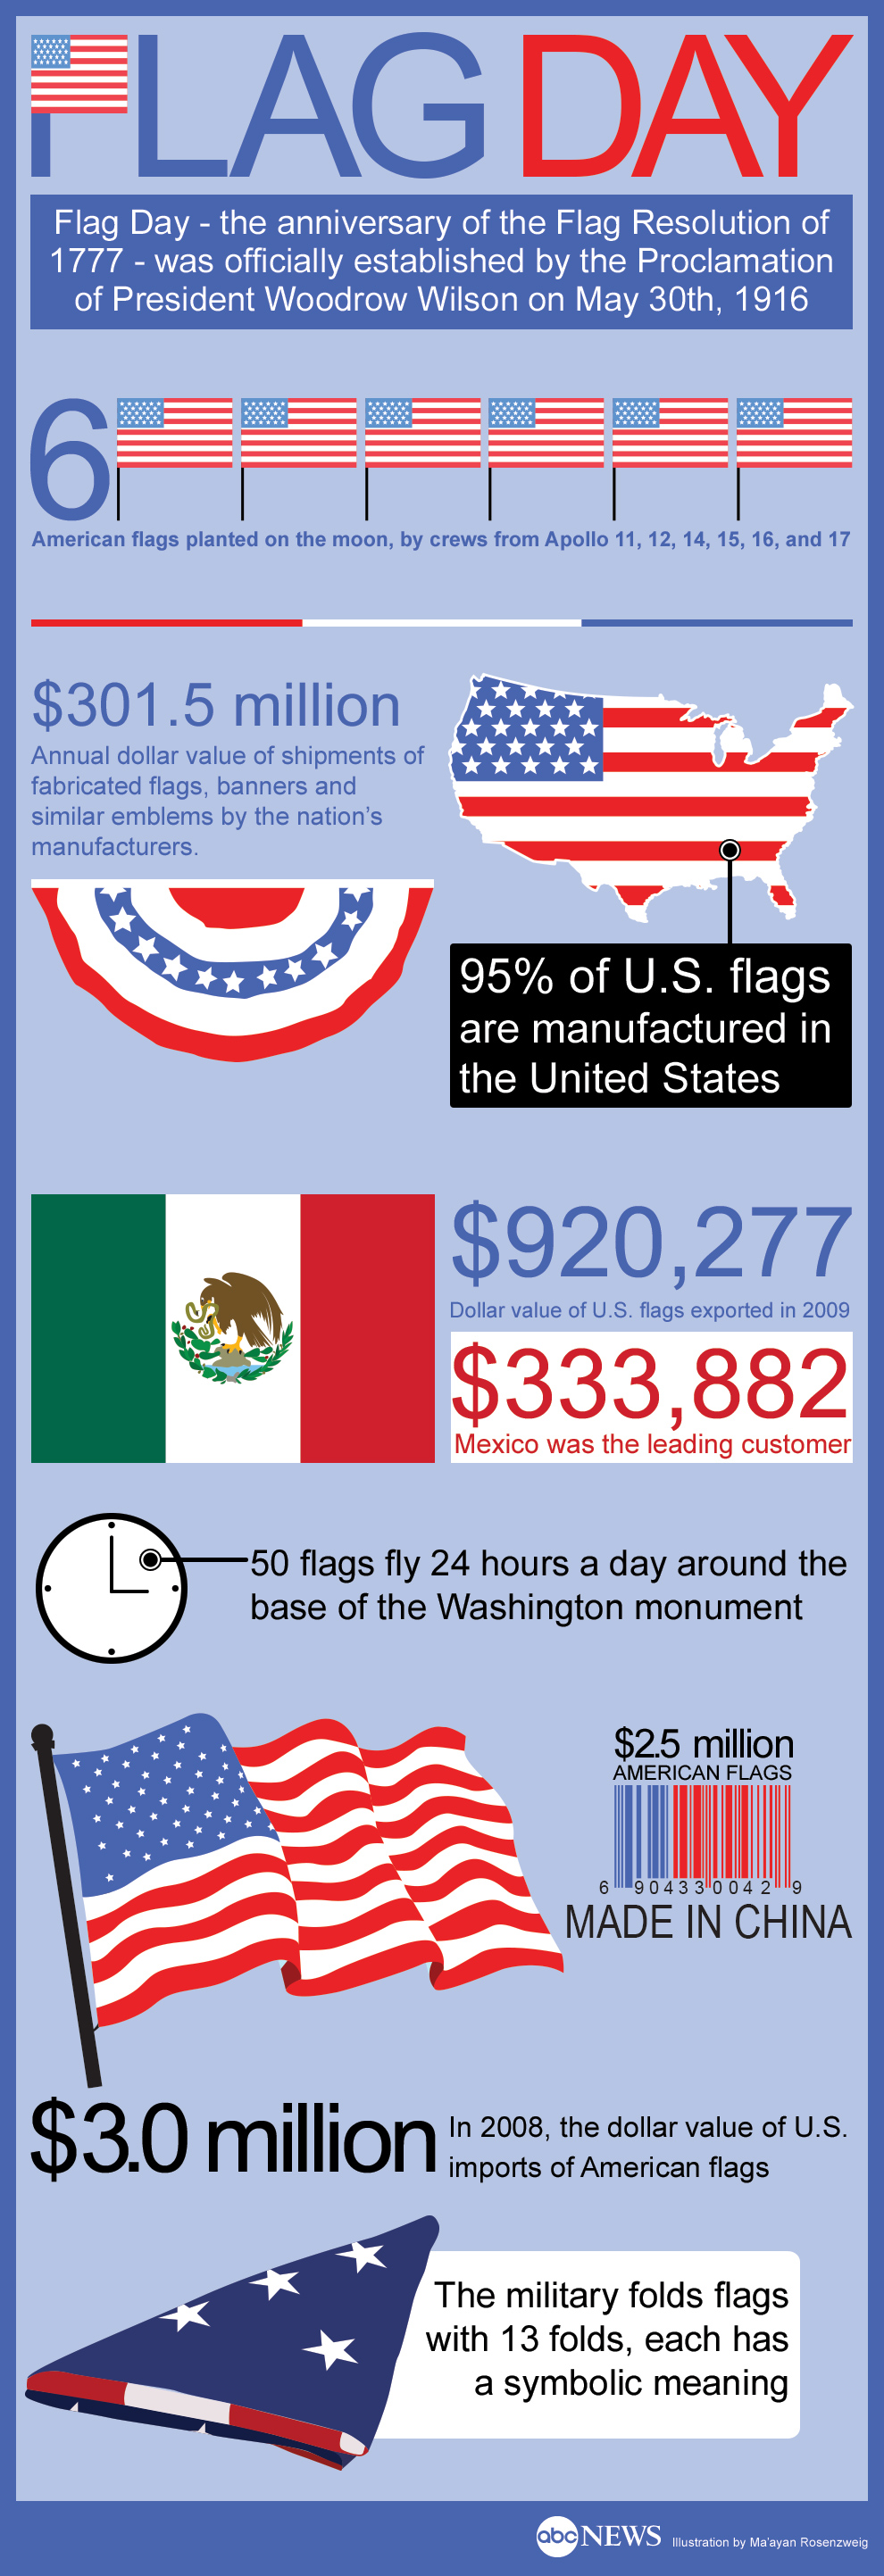 flag_day_infographic.jpg